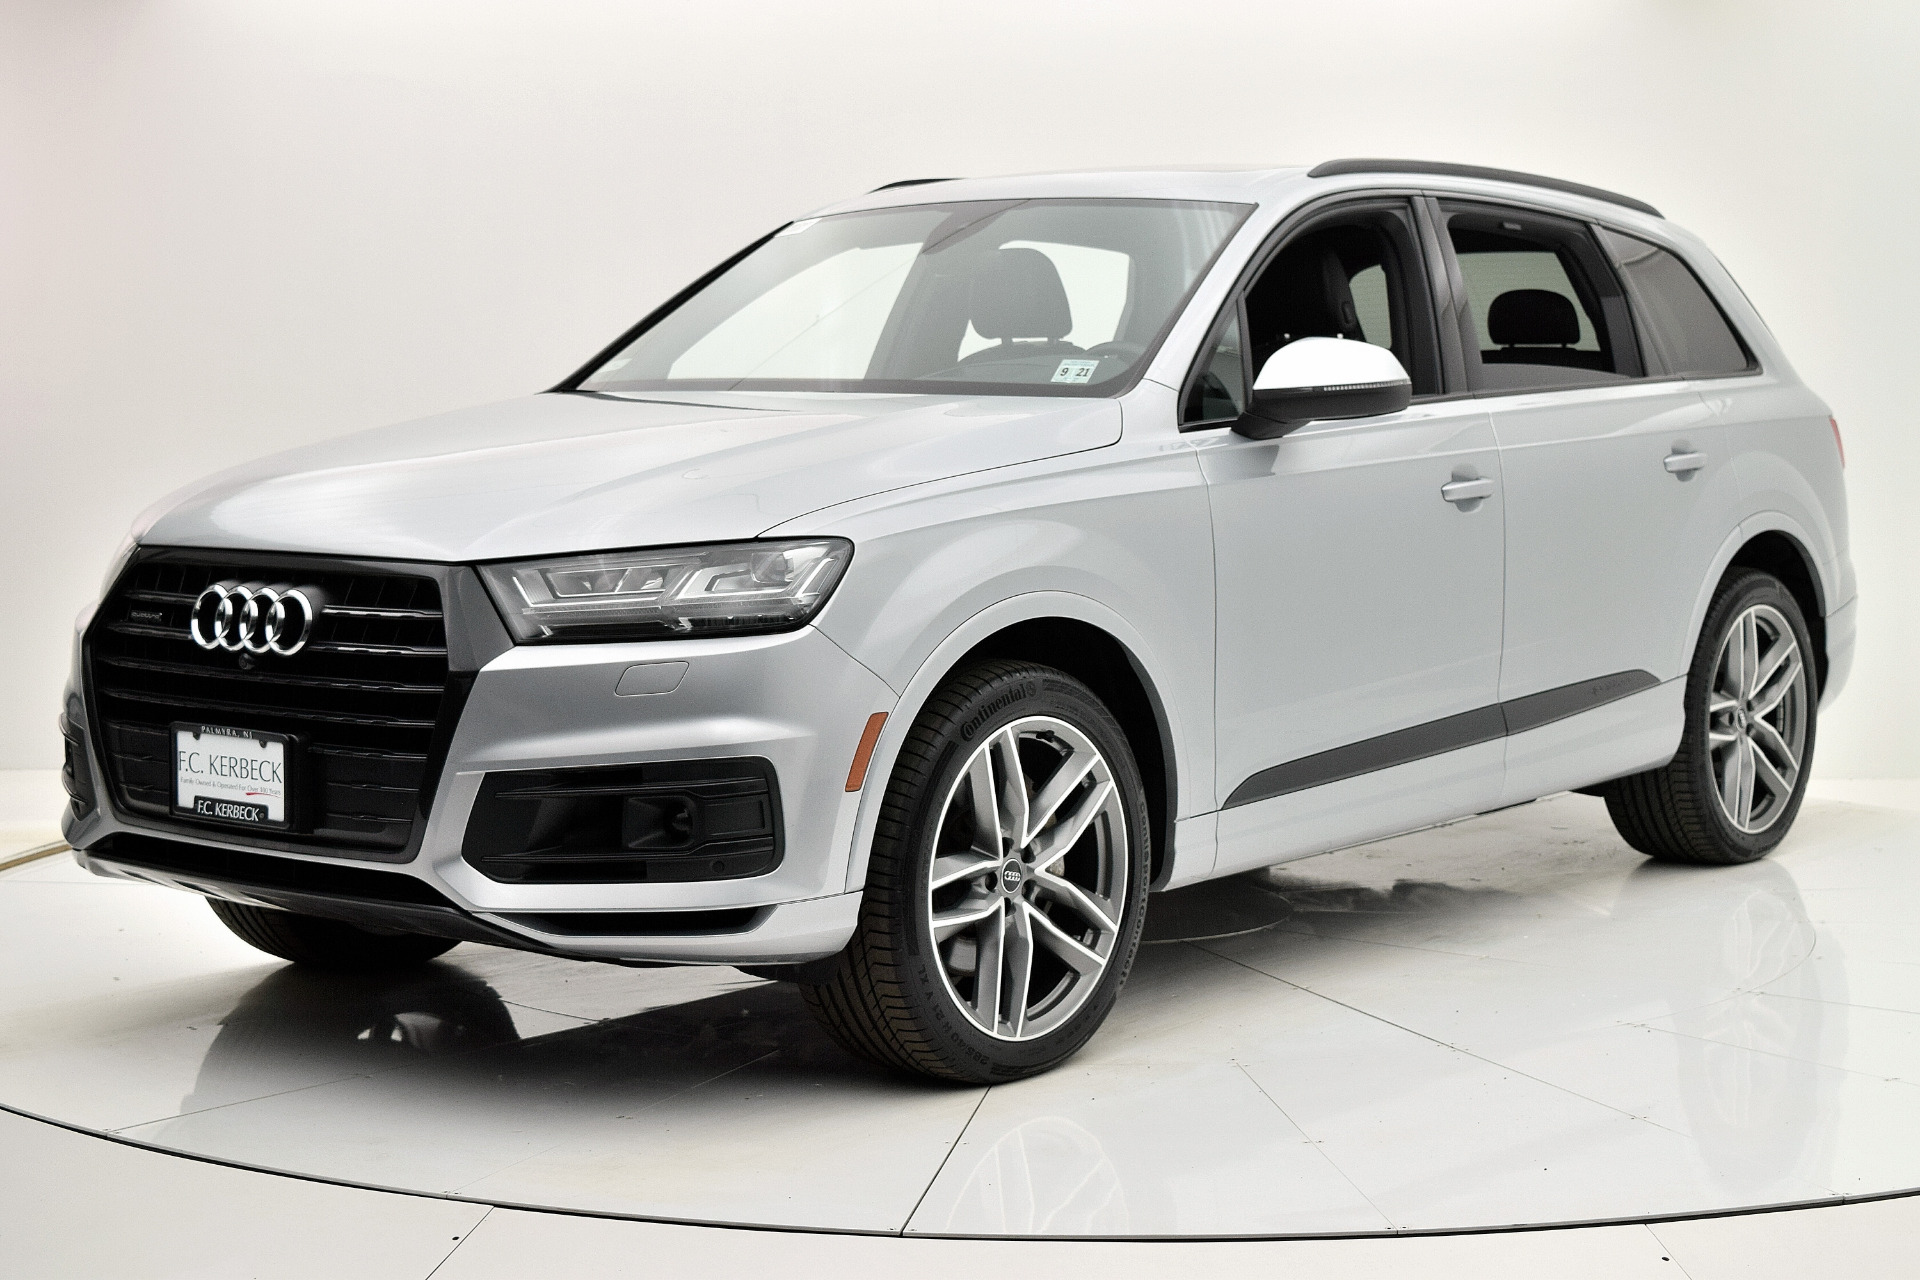 Used 2017 Audi Q7 Prestige for sale $52,880 at F.C. Kerbeck Aston Martin in Palmyra NJ 08065 2